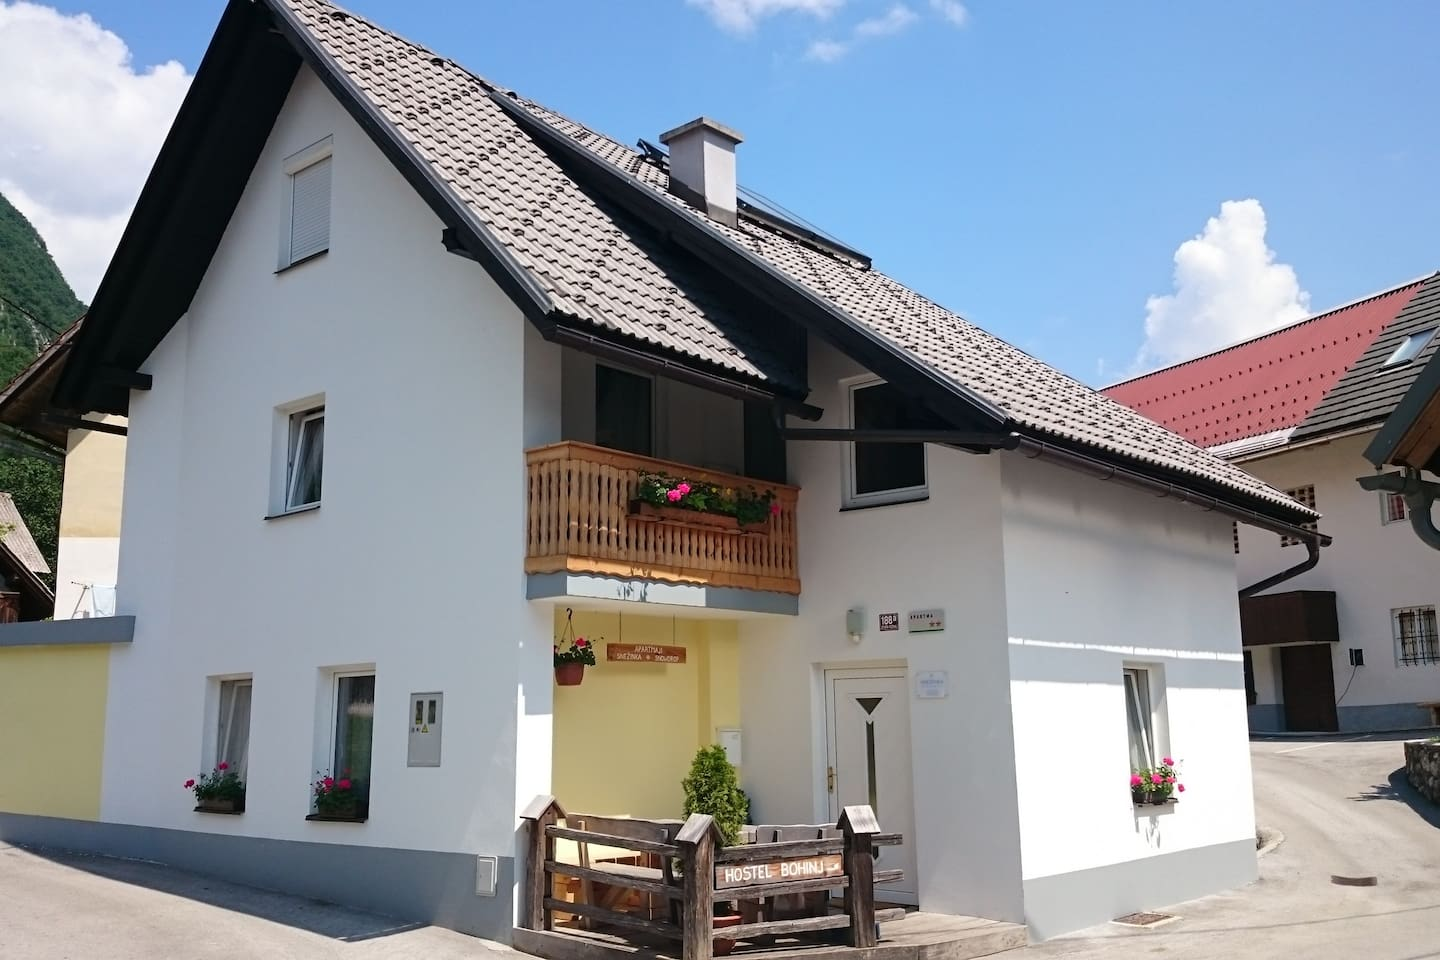 Apartment house - Chalet Snowdrop - apartment is on first floor and attic